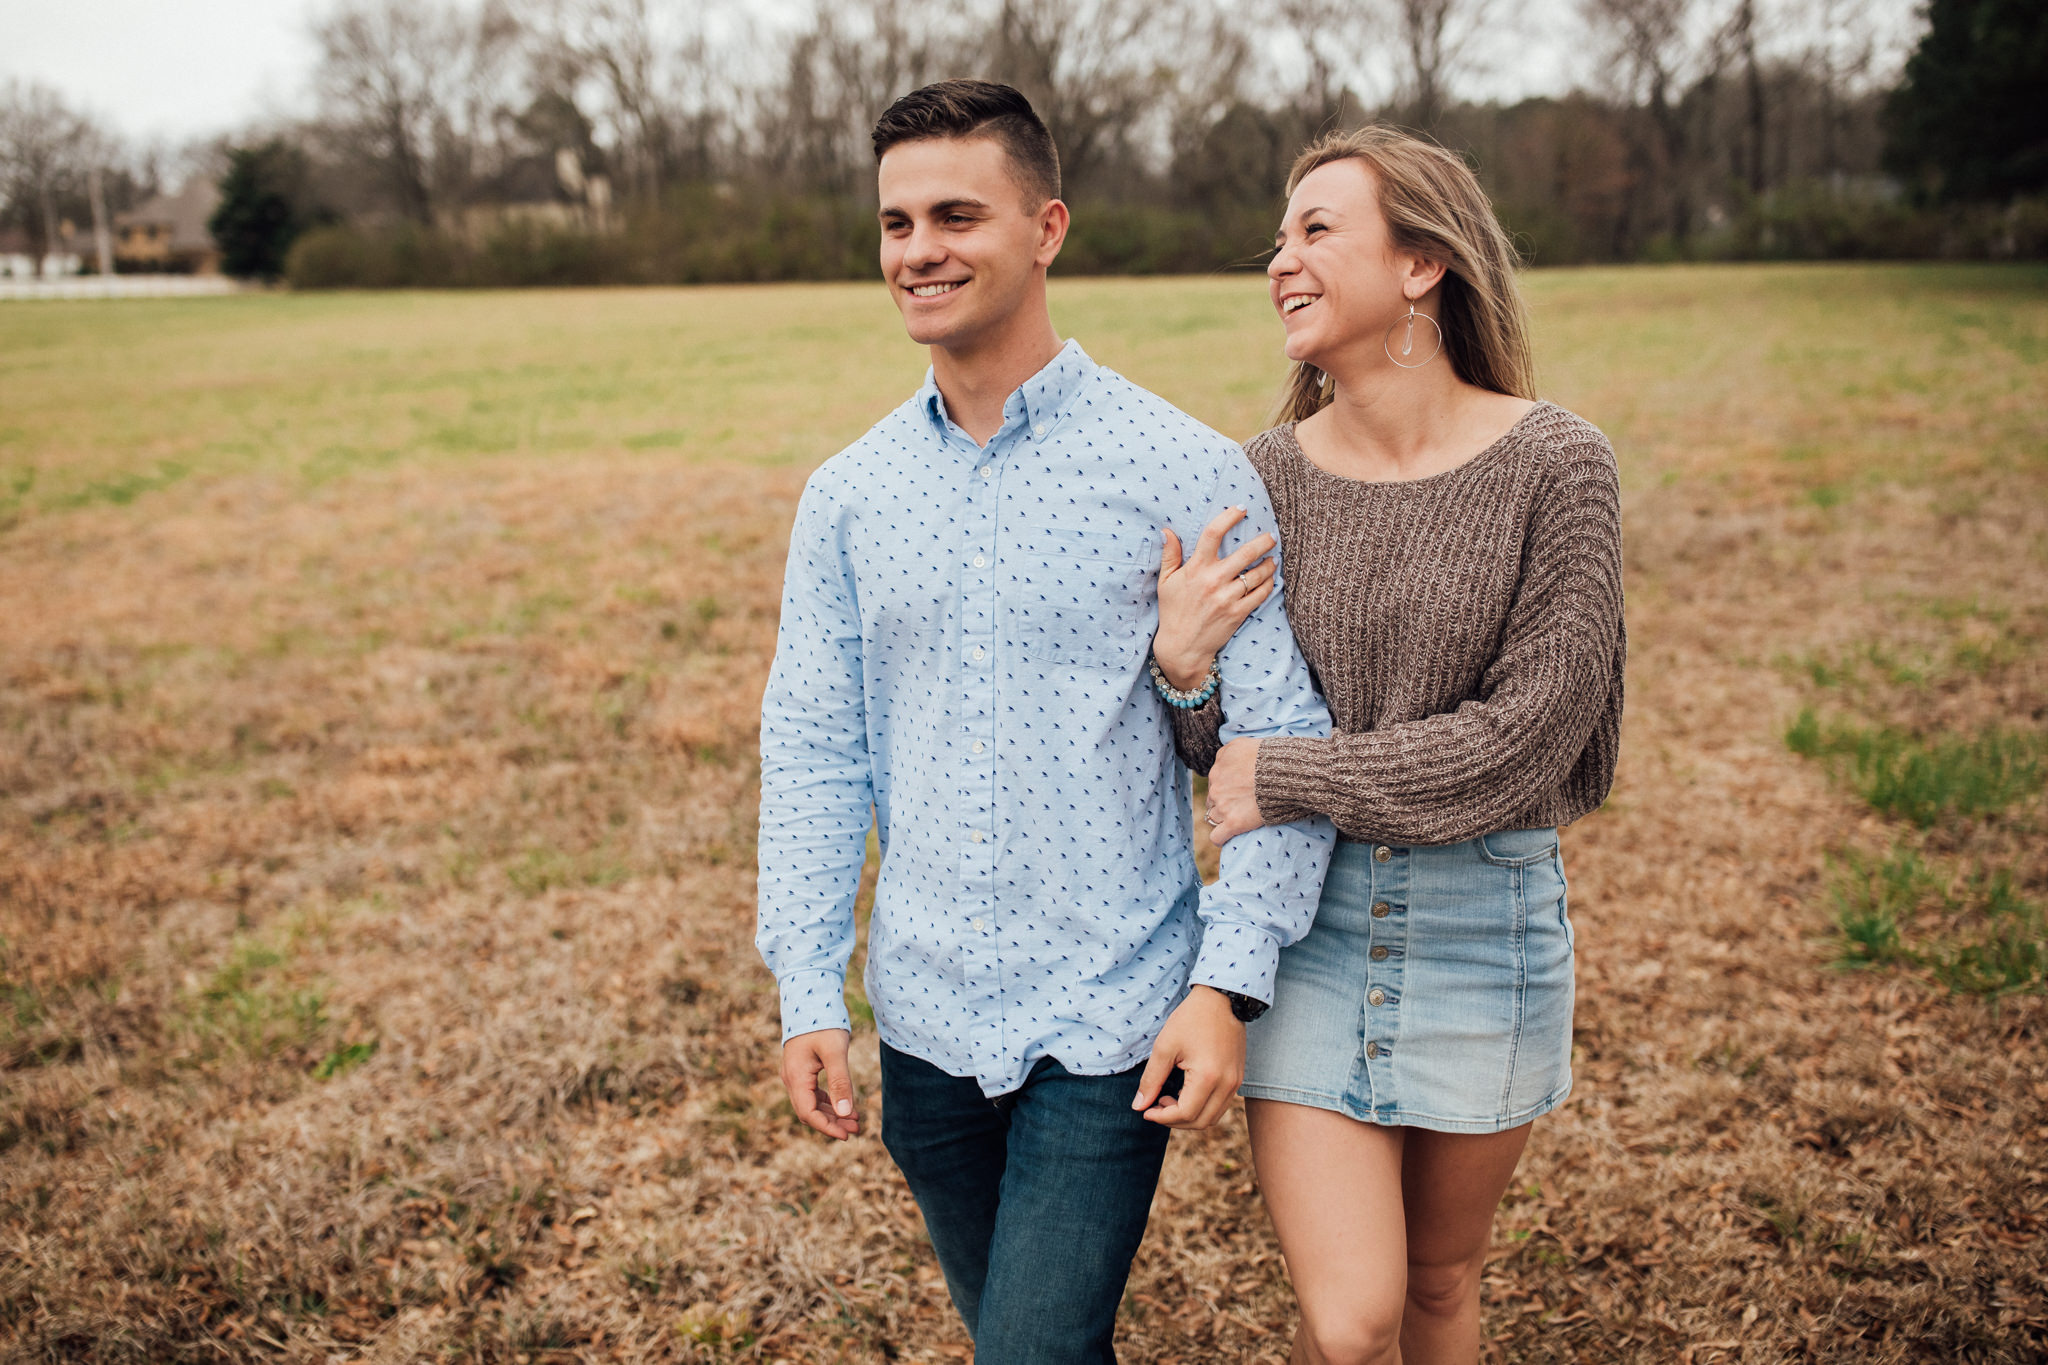 memphis-engagement-photographer-thewarmtharoundyou-greenhouse-engagement-pictures (68 of 118).jpg